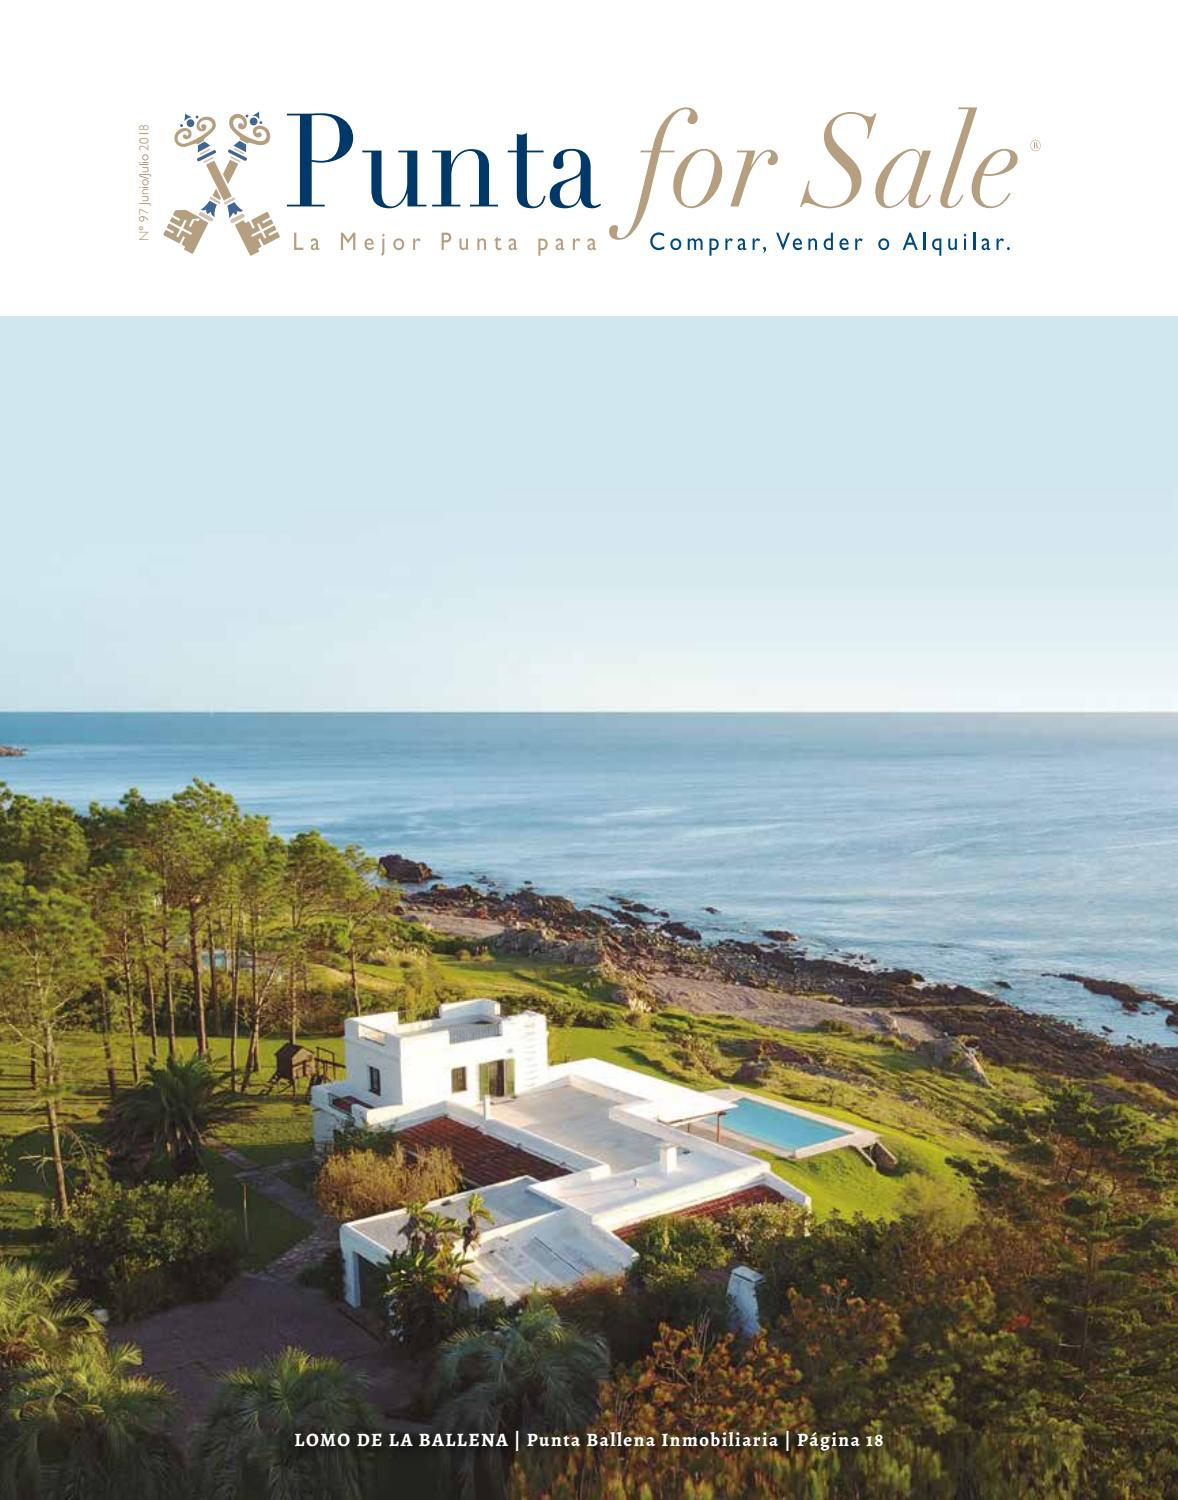 Revista de Real Estate Punta For Sale, edición #97 Junio/Julio 2018